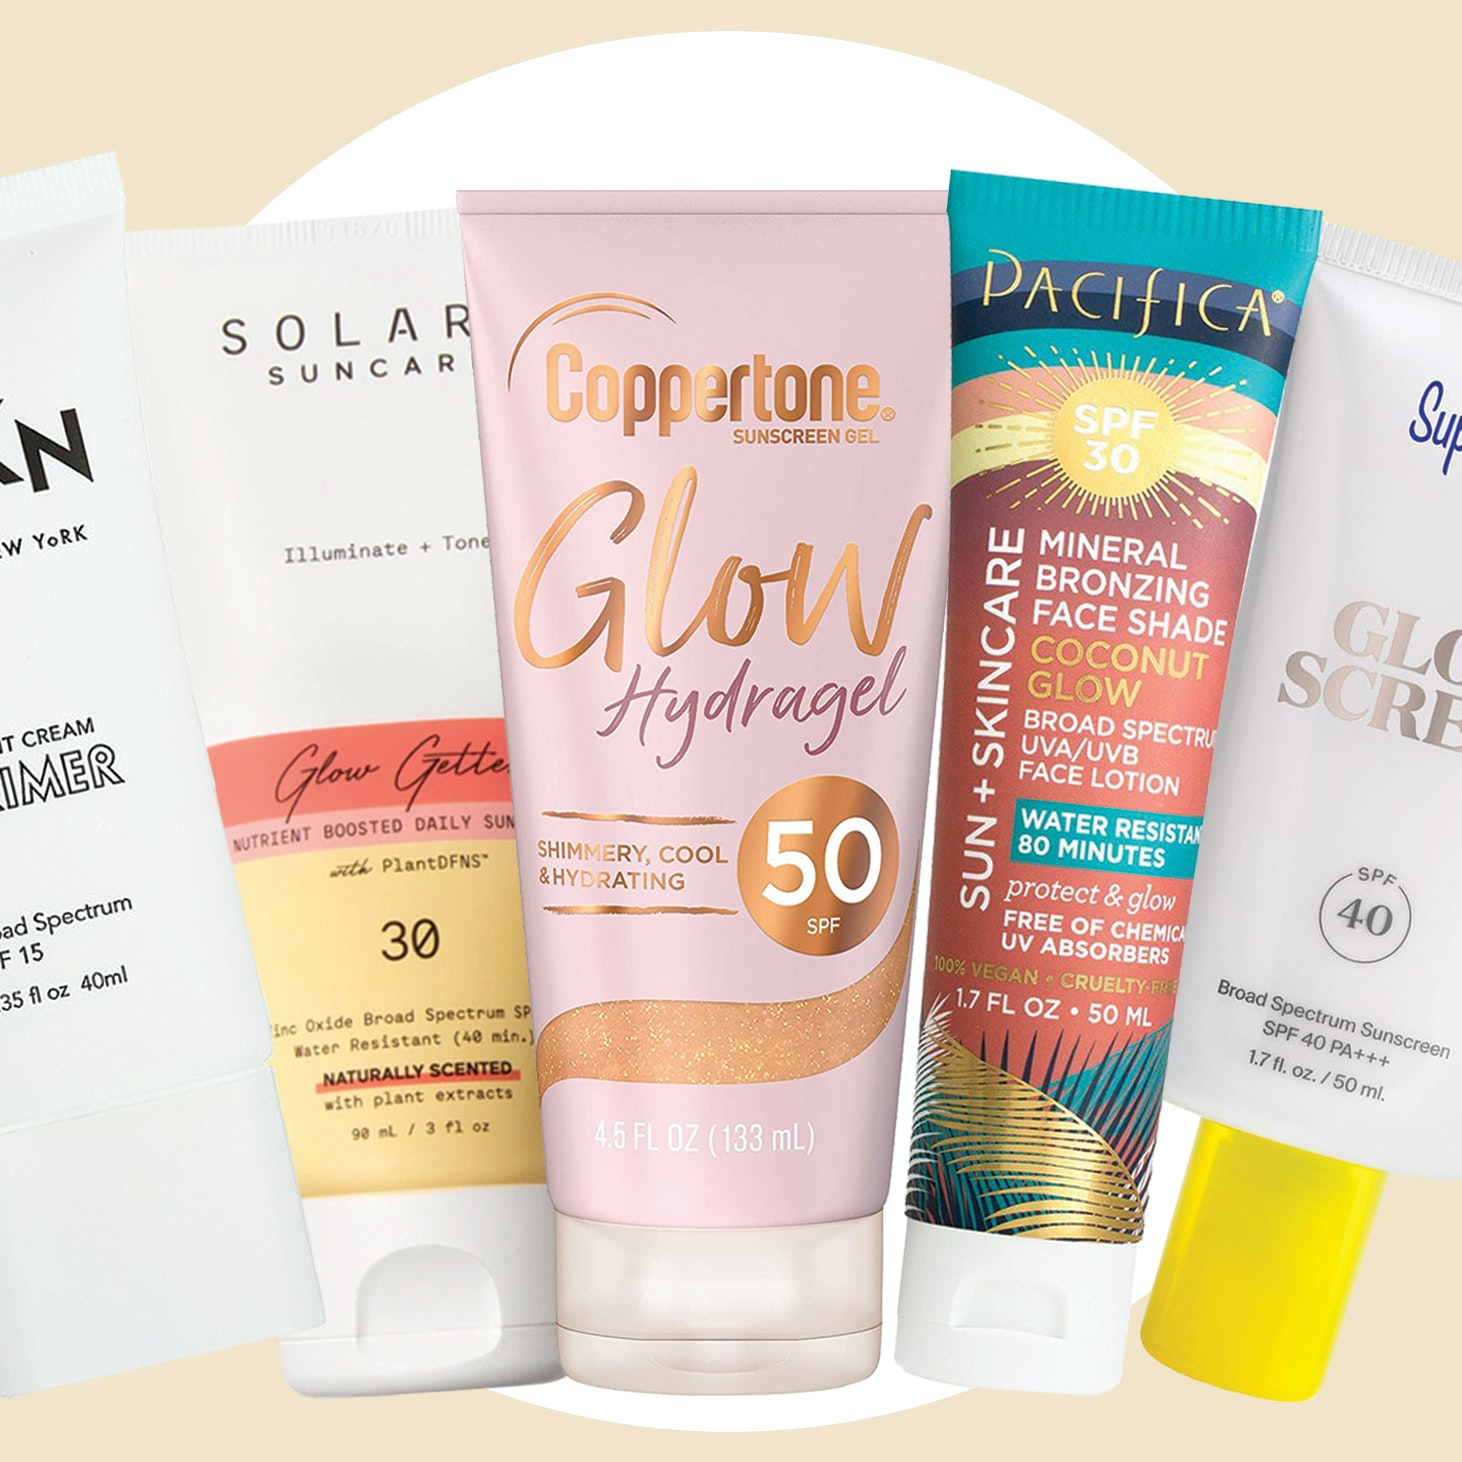 7 Ultra-Luminous, Shimmery Sunscreens For an Instant Radiance Boost